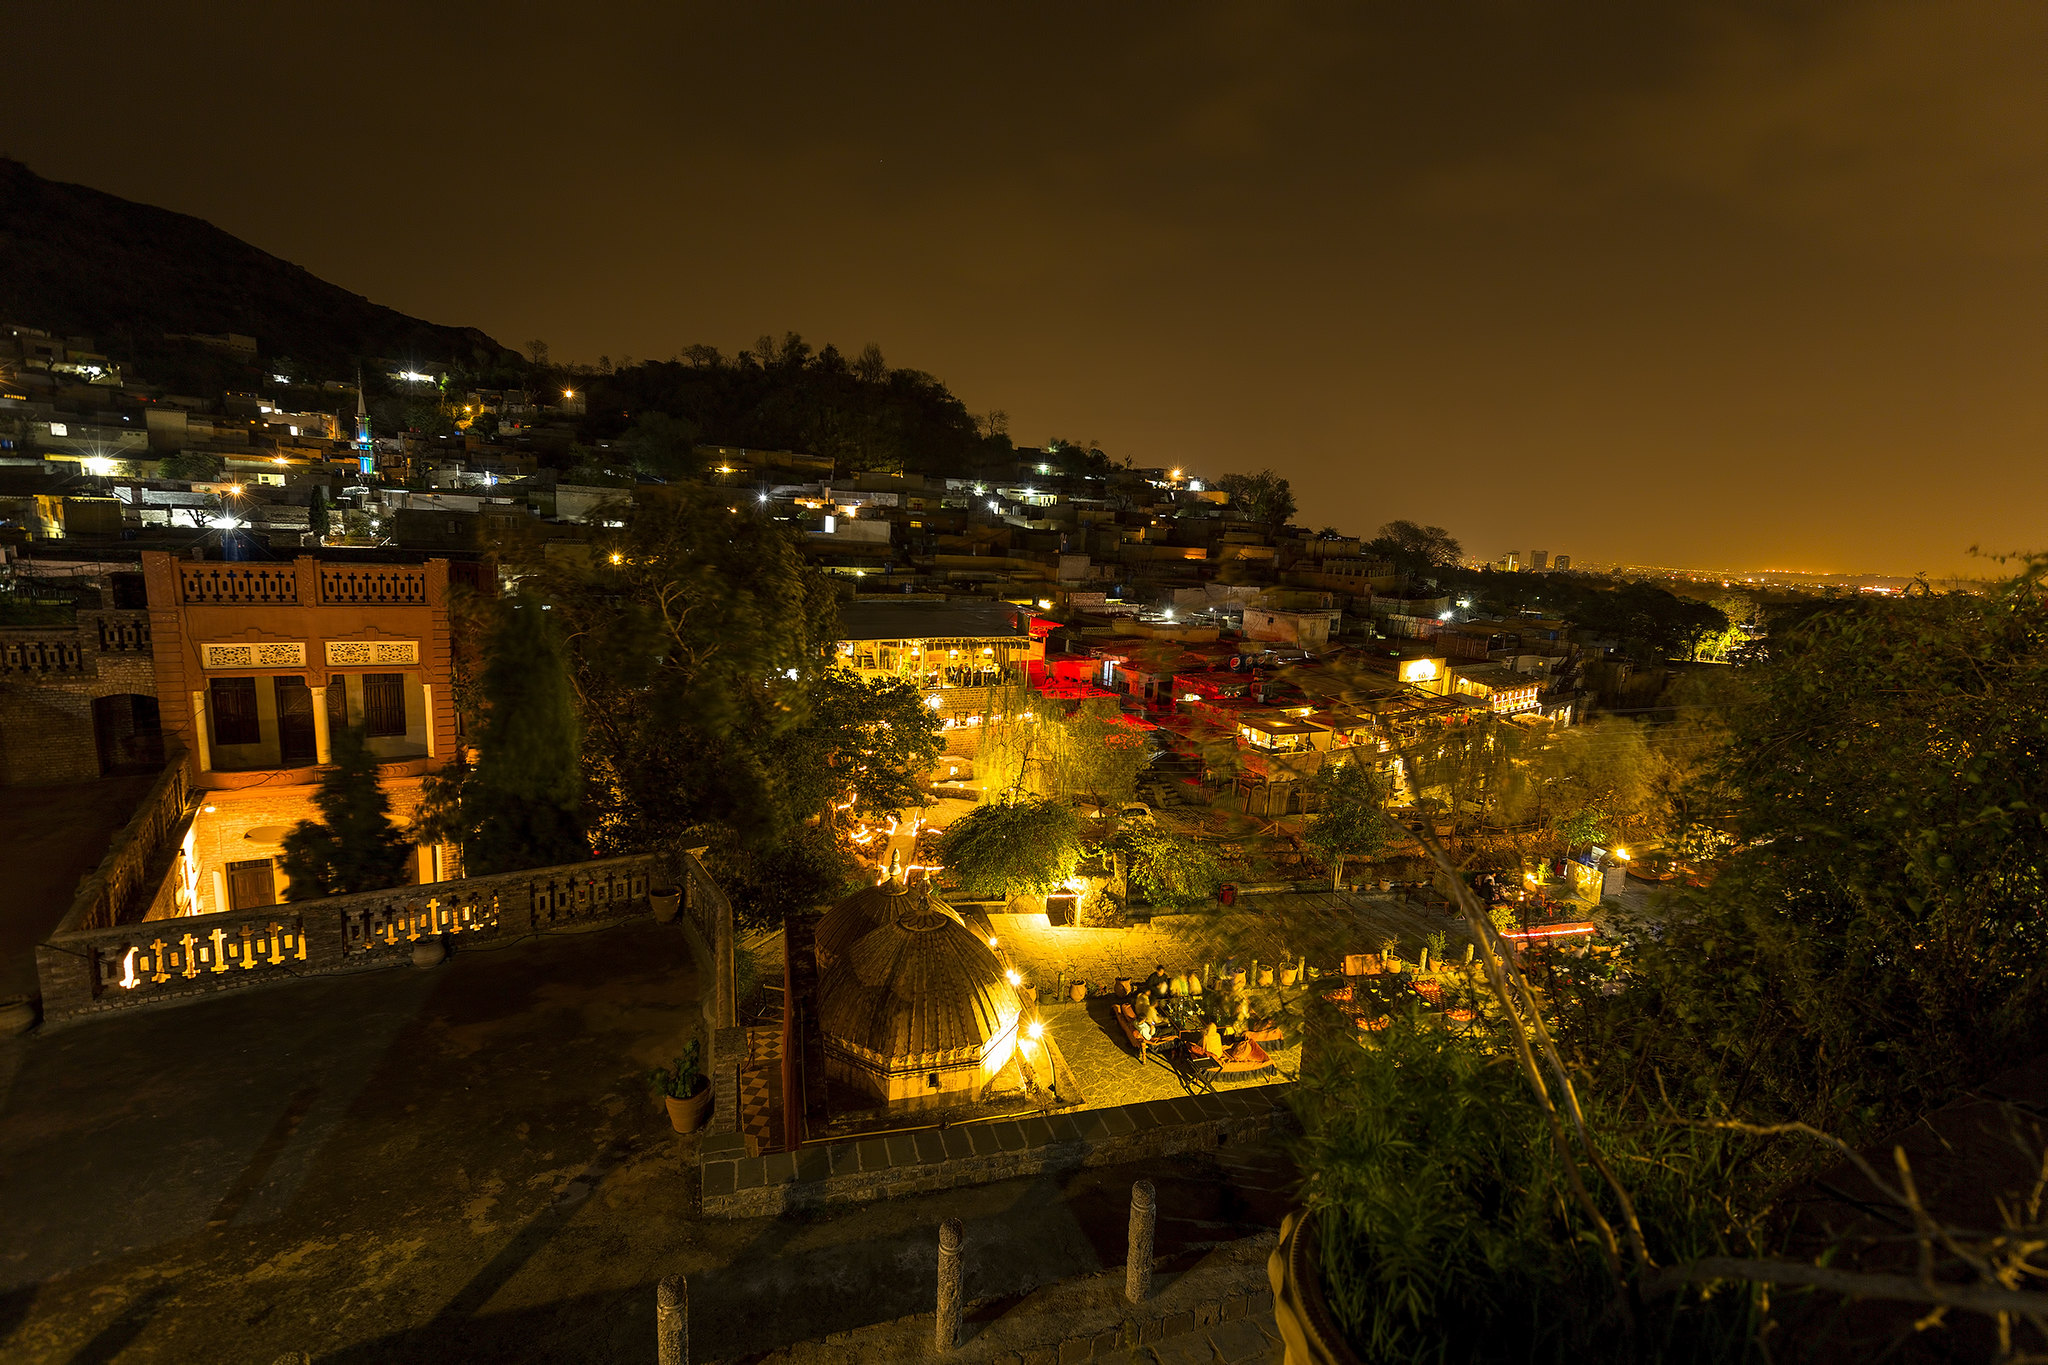 Saidpur Village at Night